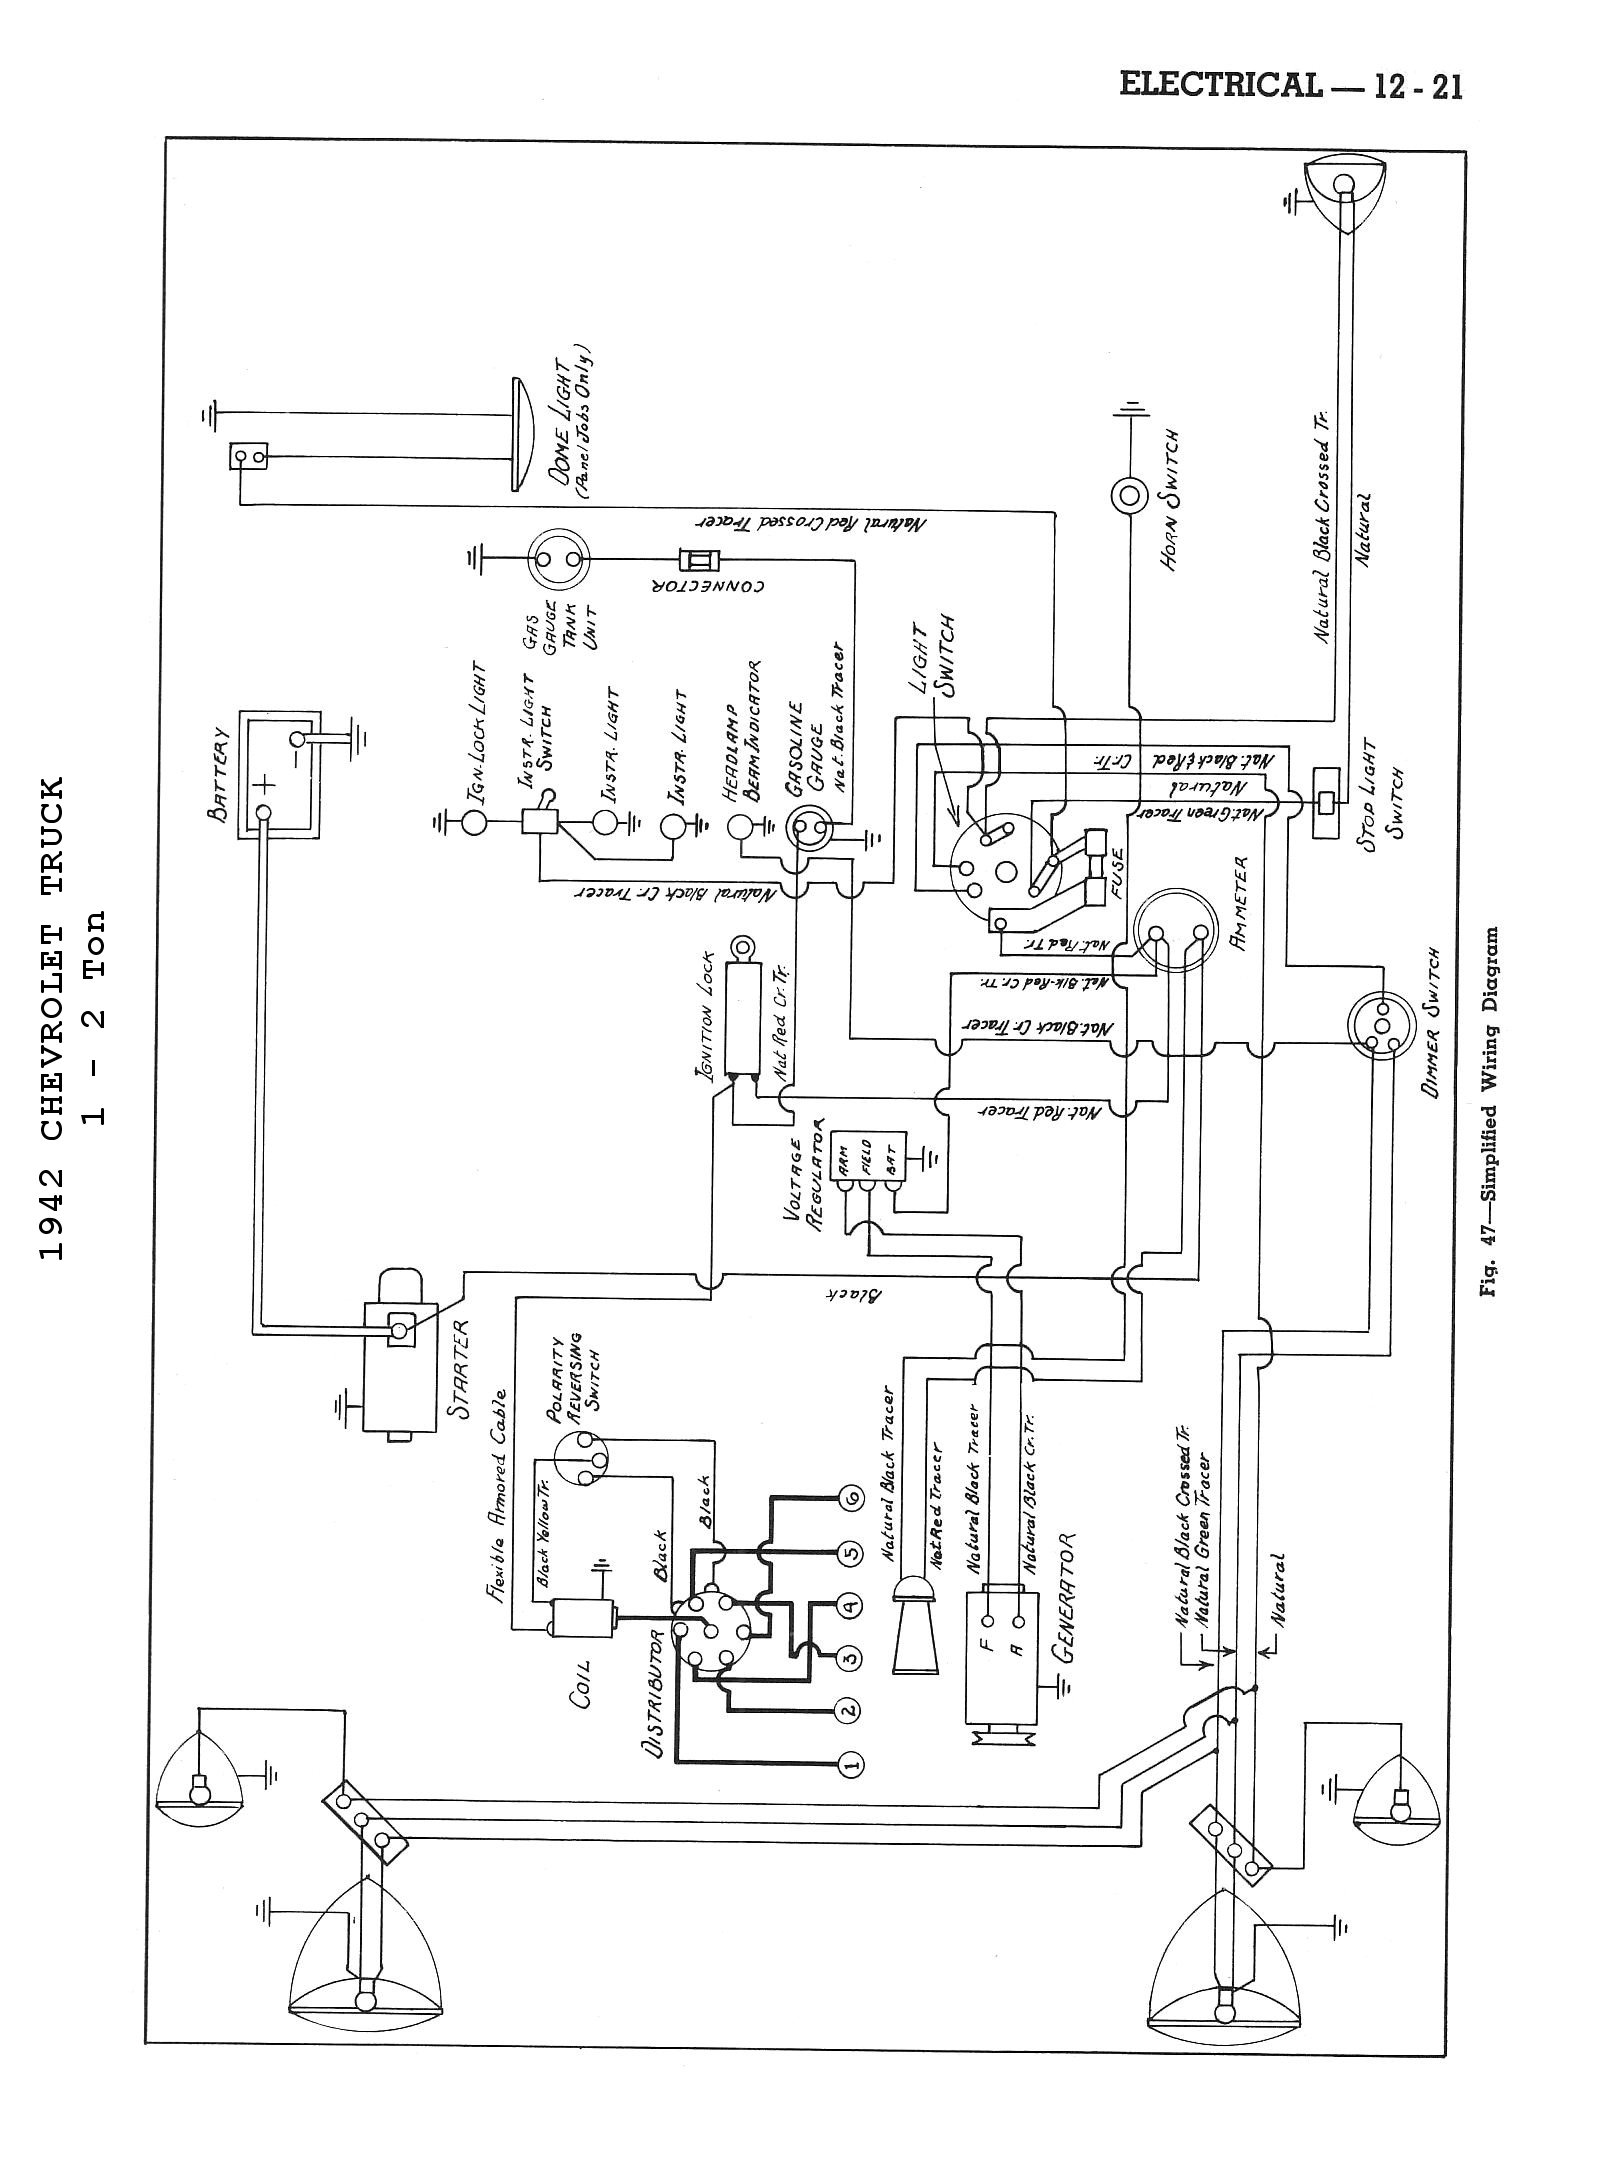 42cm4x2t1221 chevy wiring diagrams Simple Electrical Wiring Diagrams at cos-gaming.co